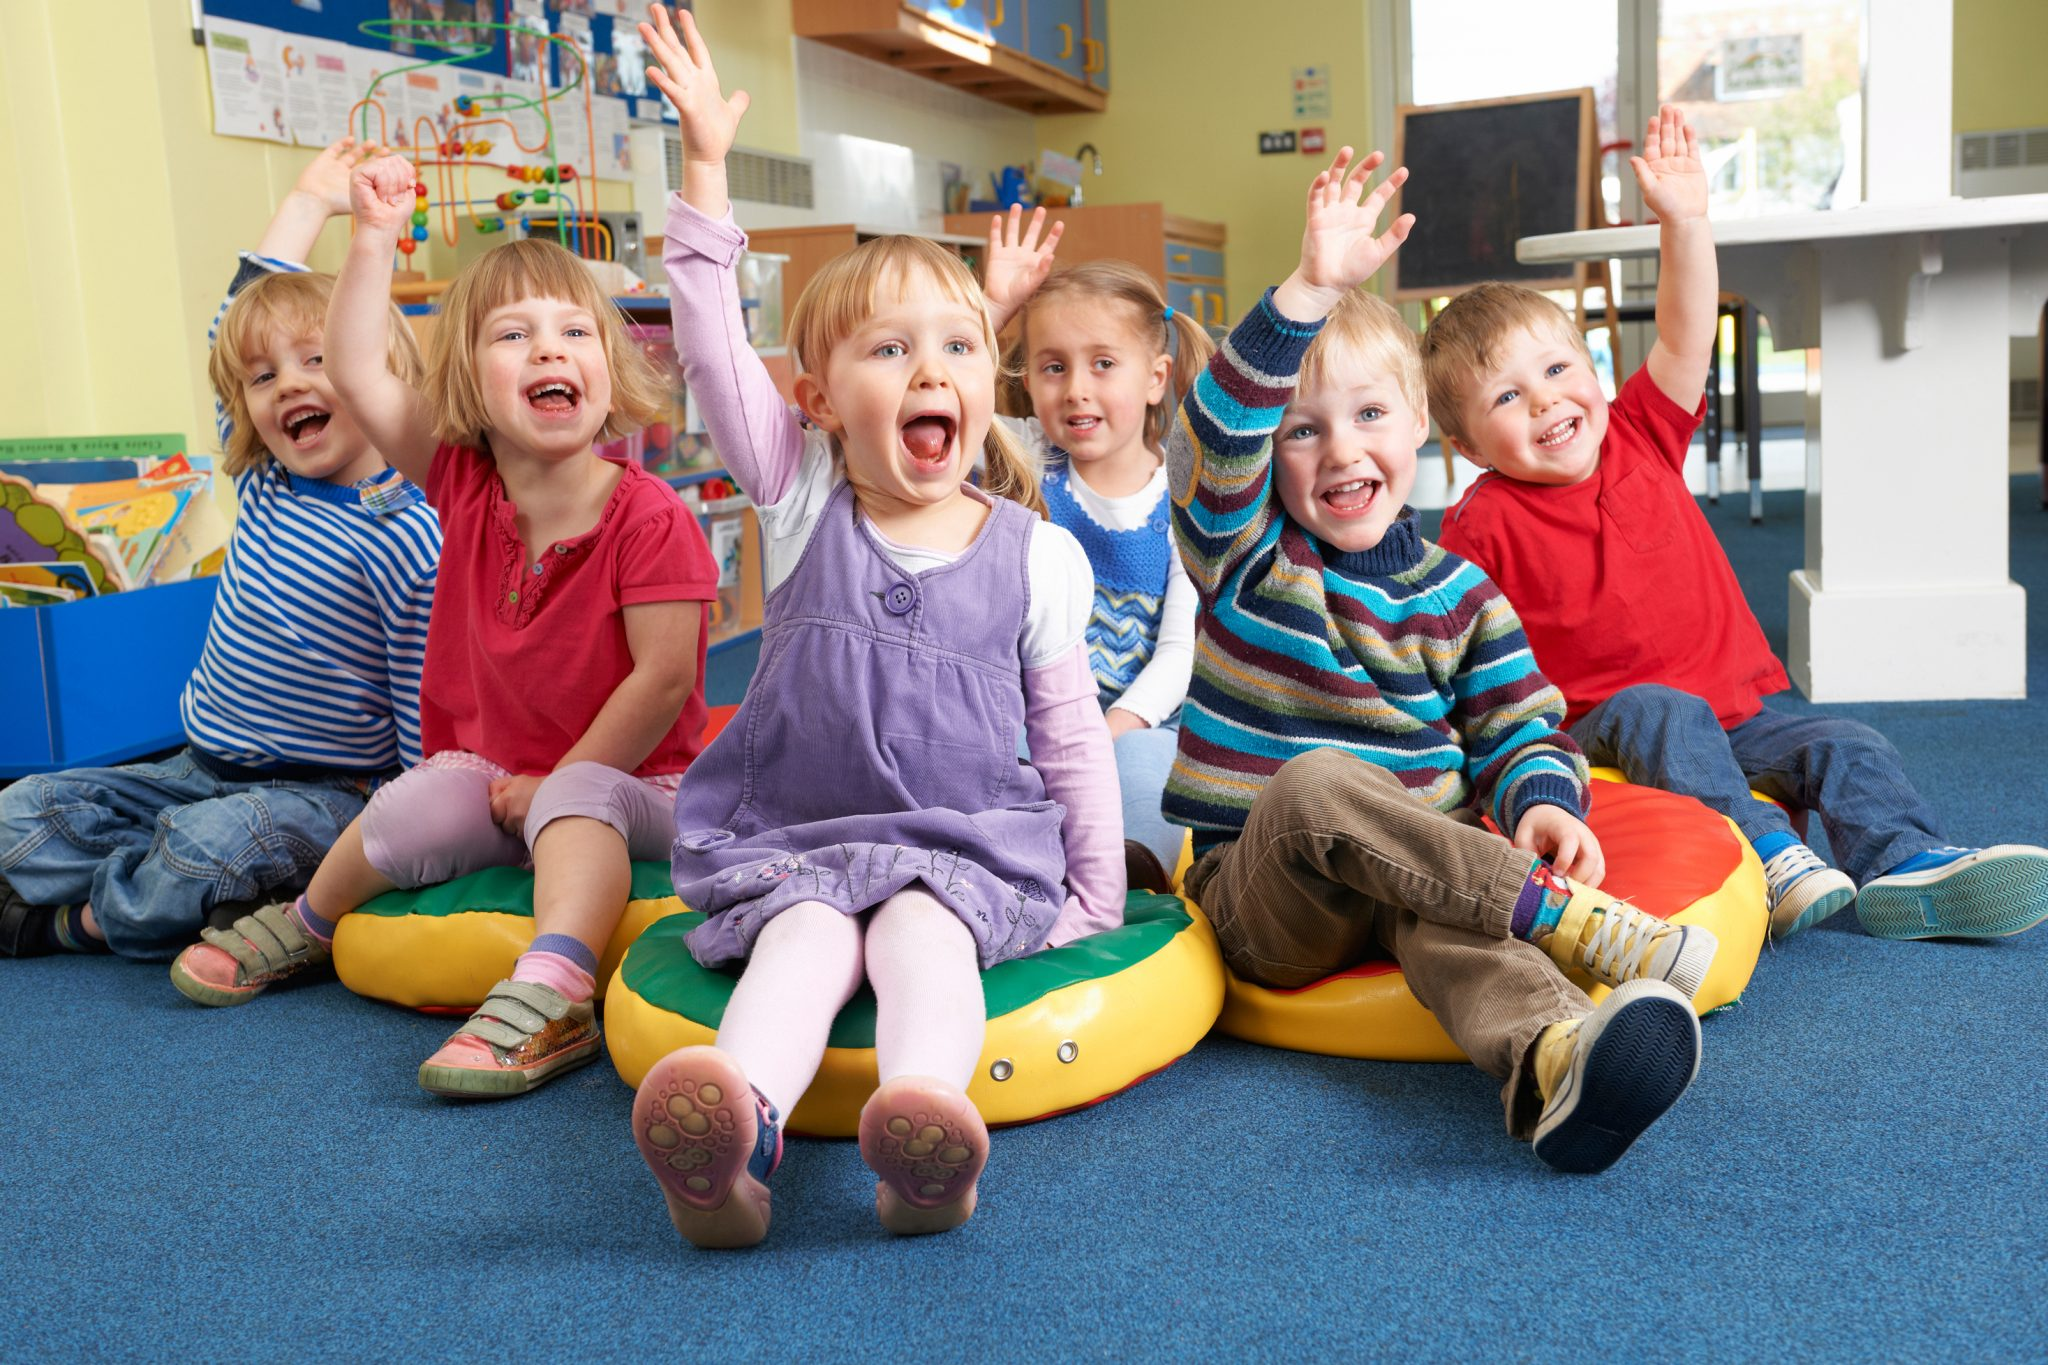 Irish creche or how did my 2.5 year old joined the preschool